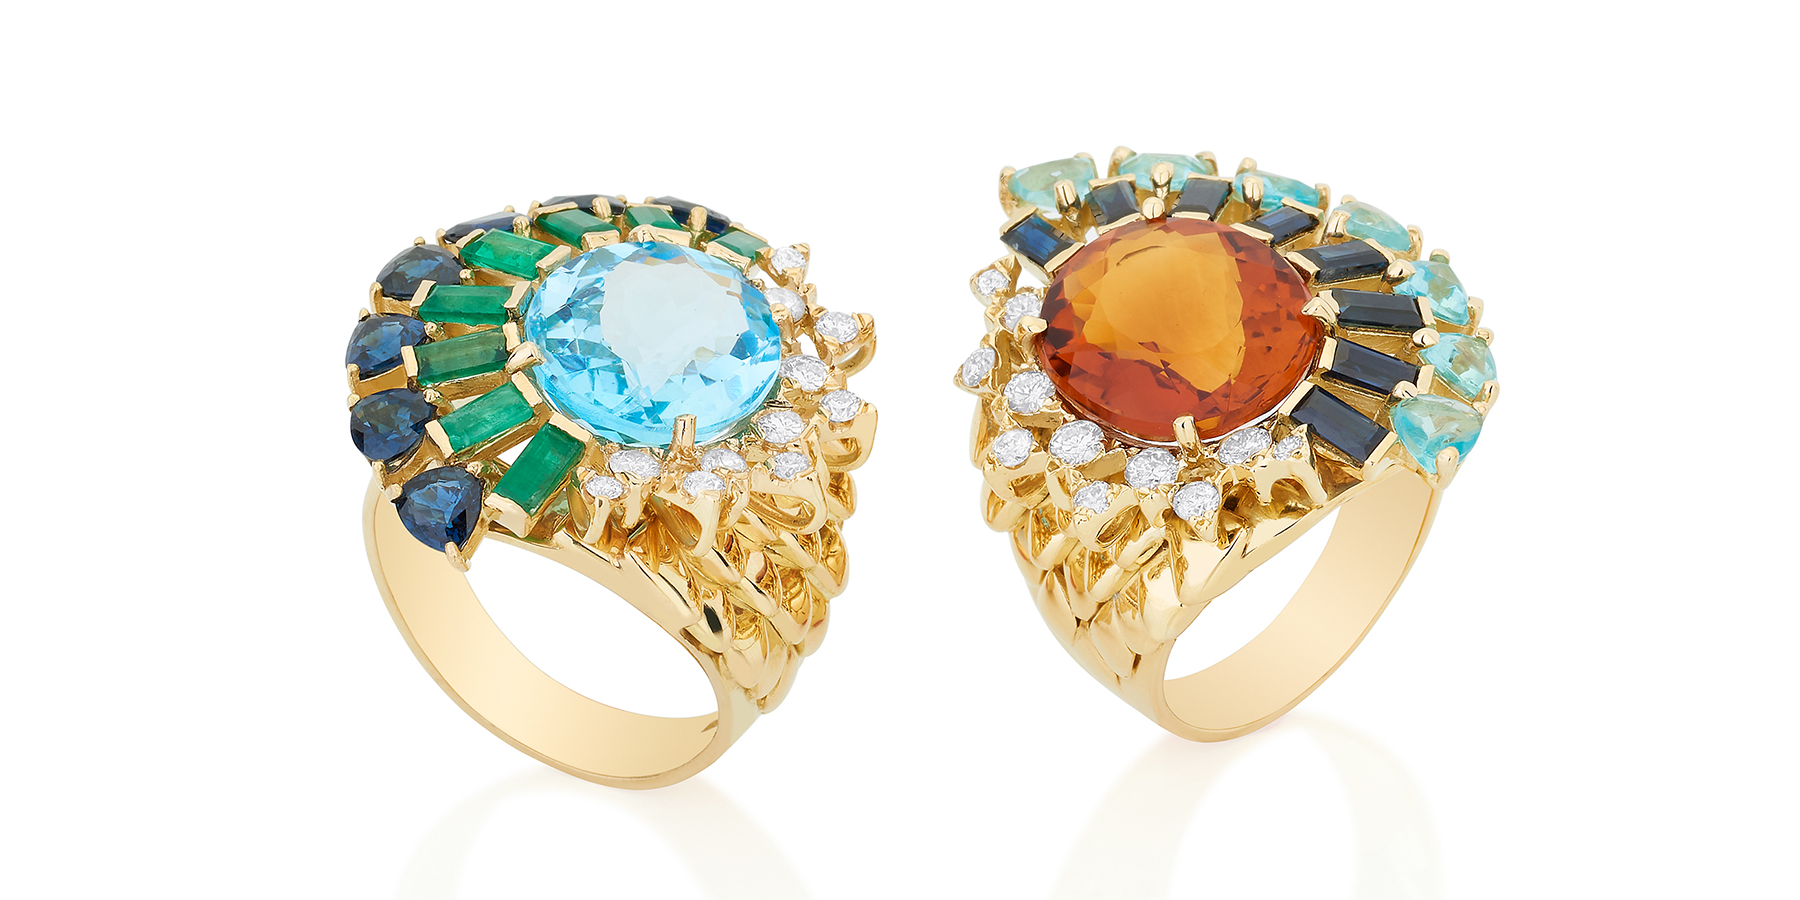 Carol Kauffmann 'Magic Scales' rings with (left) topaz, emeralds, sapphires and diamonds, and (right) citrine, sapphires, apatite and diamonds, both in 18k yellow gold